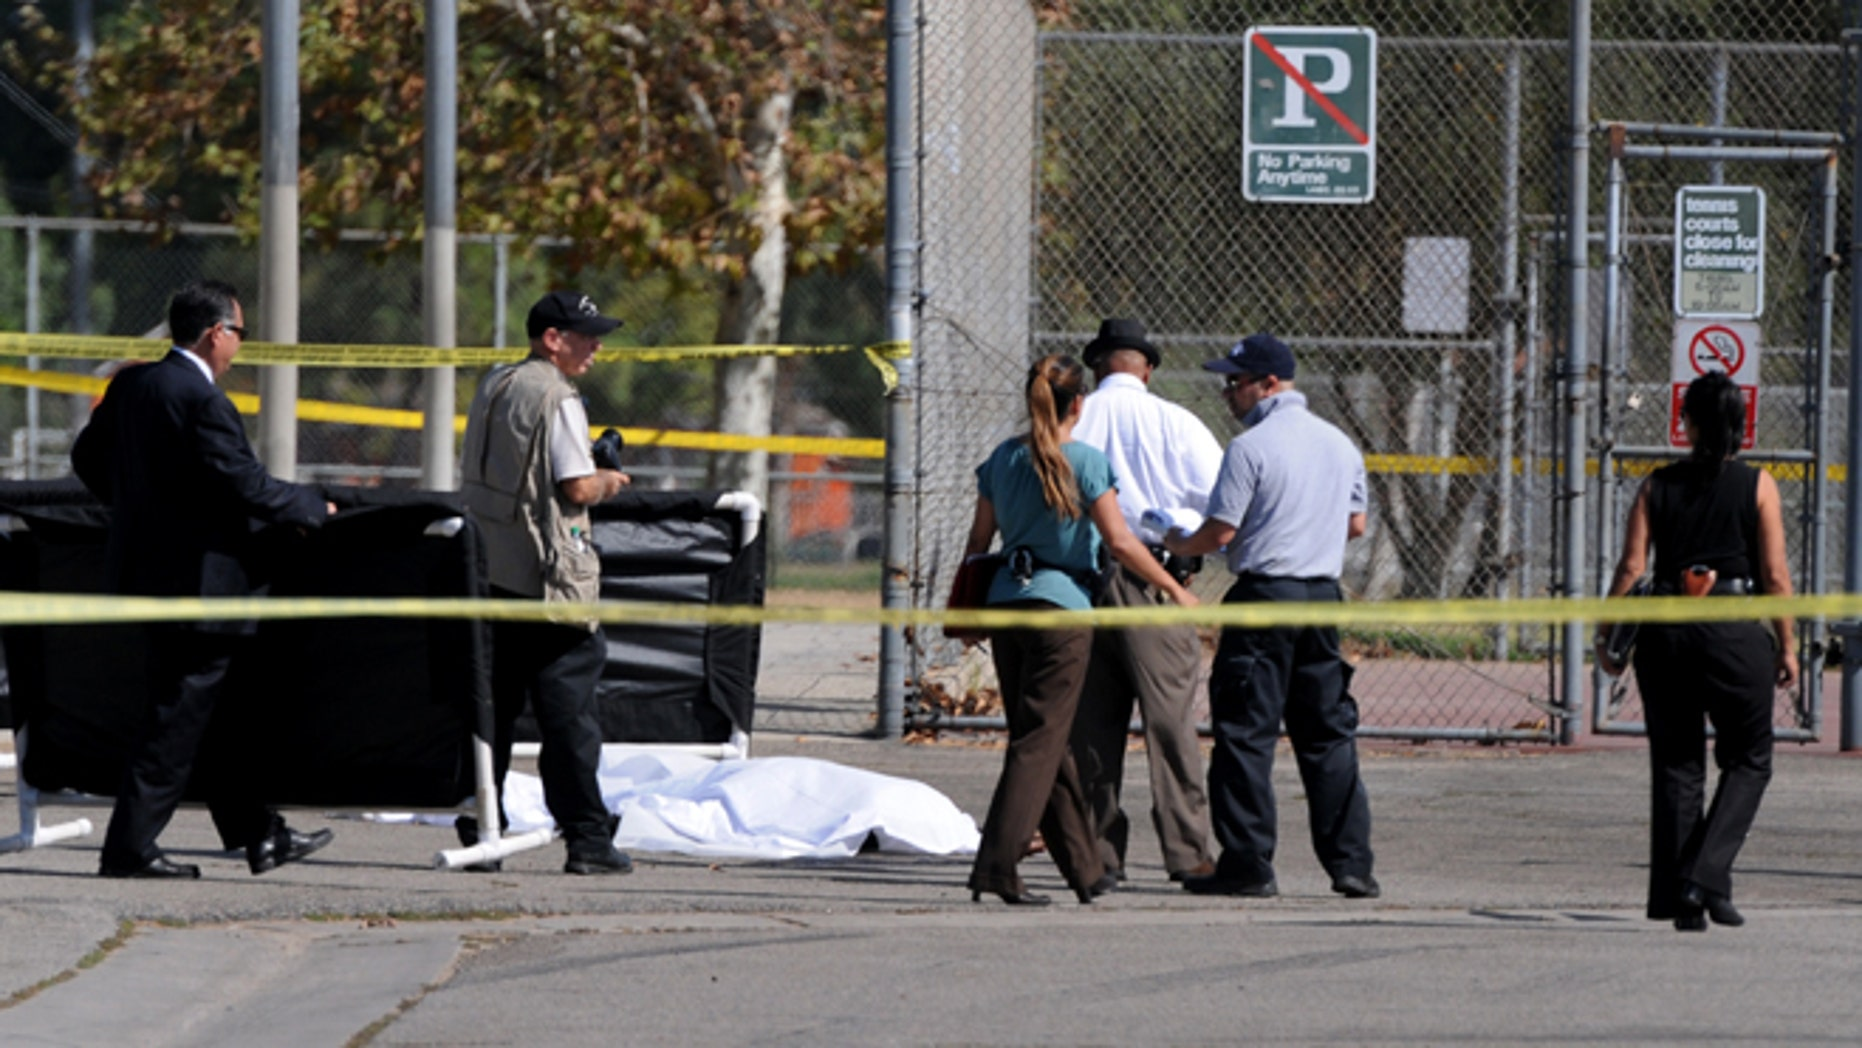 Los Angeles Police Department officers investigate the scene of a shooting Sunday, Aug. 24, 2014, where one person was killed near the 14400 block of Polk Street in Sylmar, Calif.  Describing what they called a major public threat, Los Angeles police said they are seeking clues to three separate shootings in the Northeast San Fernando Valley that left three people dead and four others injured early Sunday morning and appear to be connected. A suspect in the shootings was taken into custody by SWAT officers Sunday night after holing up inside a house in the Sylmar neighborhood for about an hour, Capt. William Hayes said.  (AP Photo/Los Angeles Daily News, Dean Musgrove)